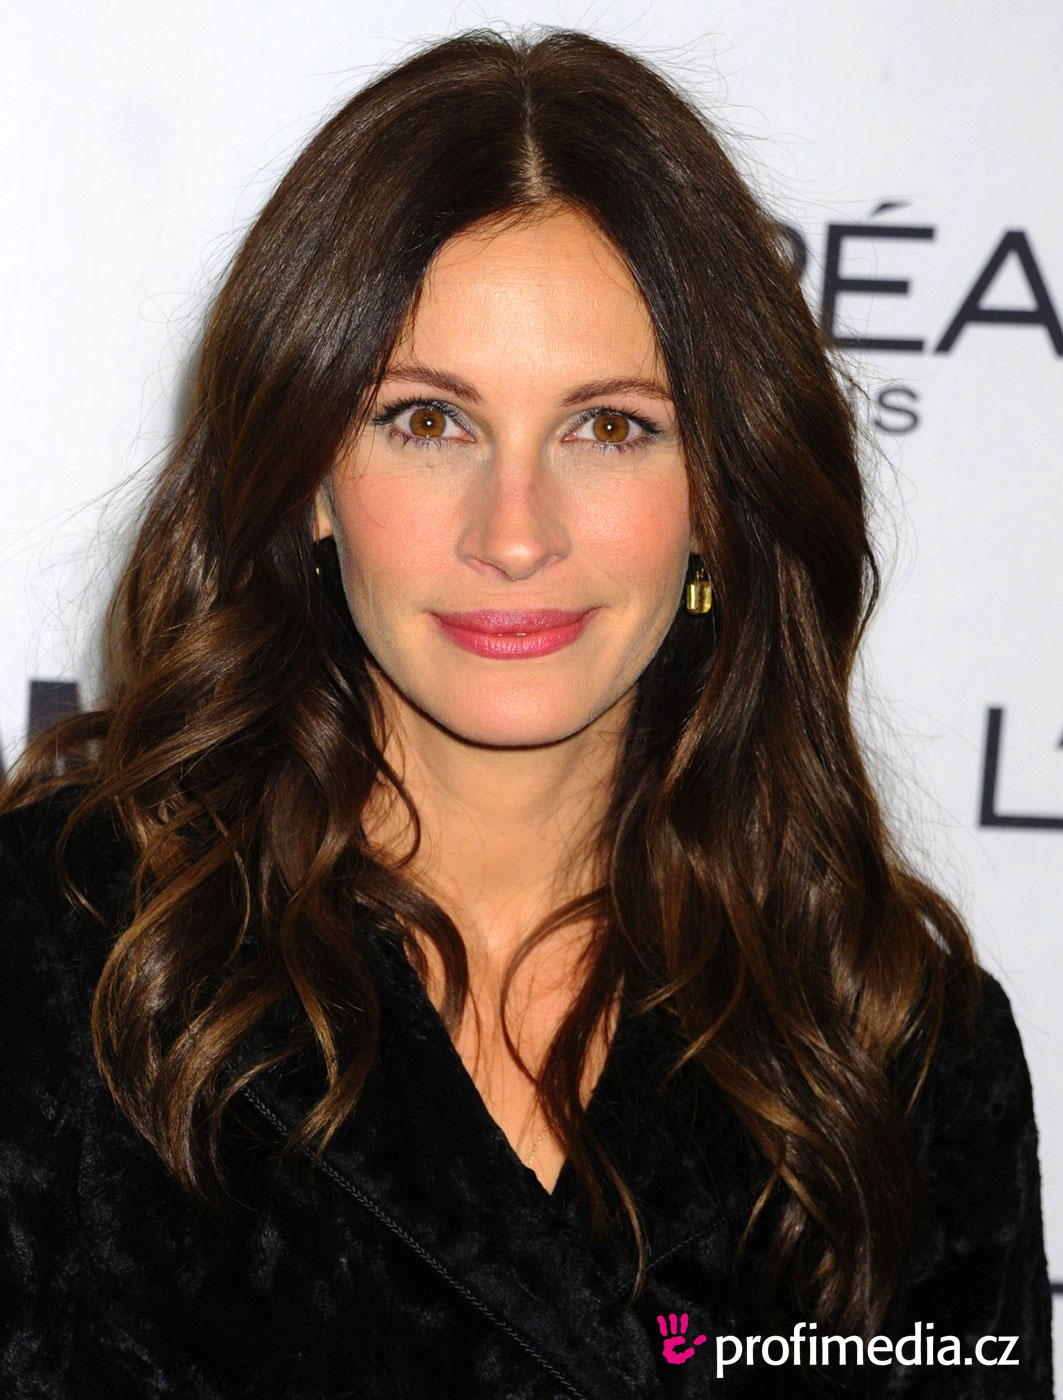 Julia Roberts So Devastated By Half Sister Nancy Motes S: EasyHairStyler